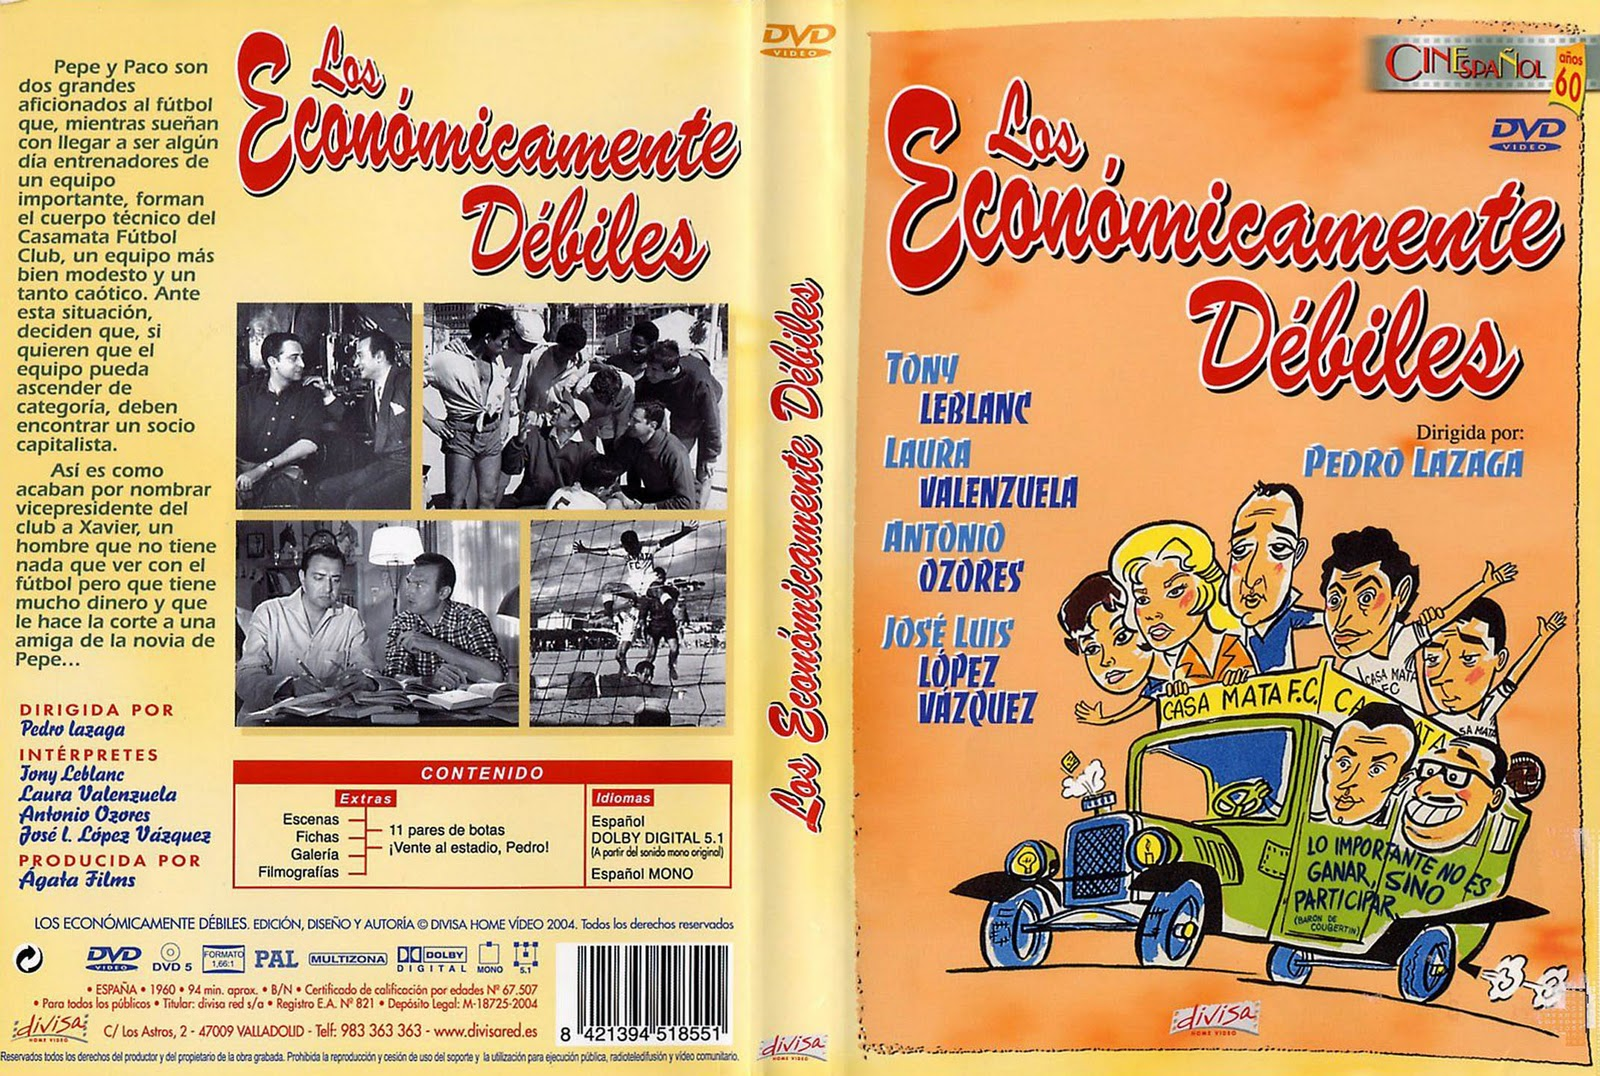 Los economicamente debiles movie